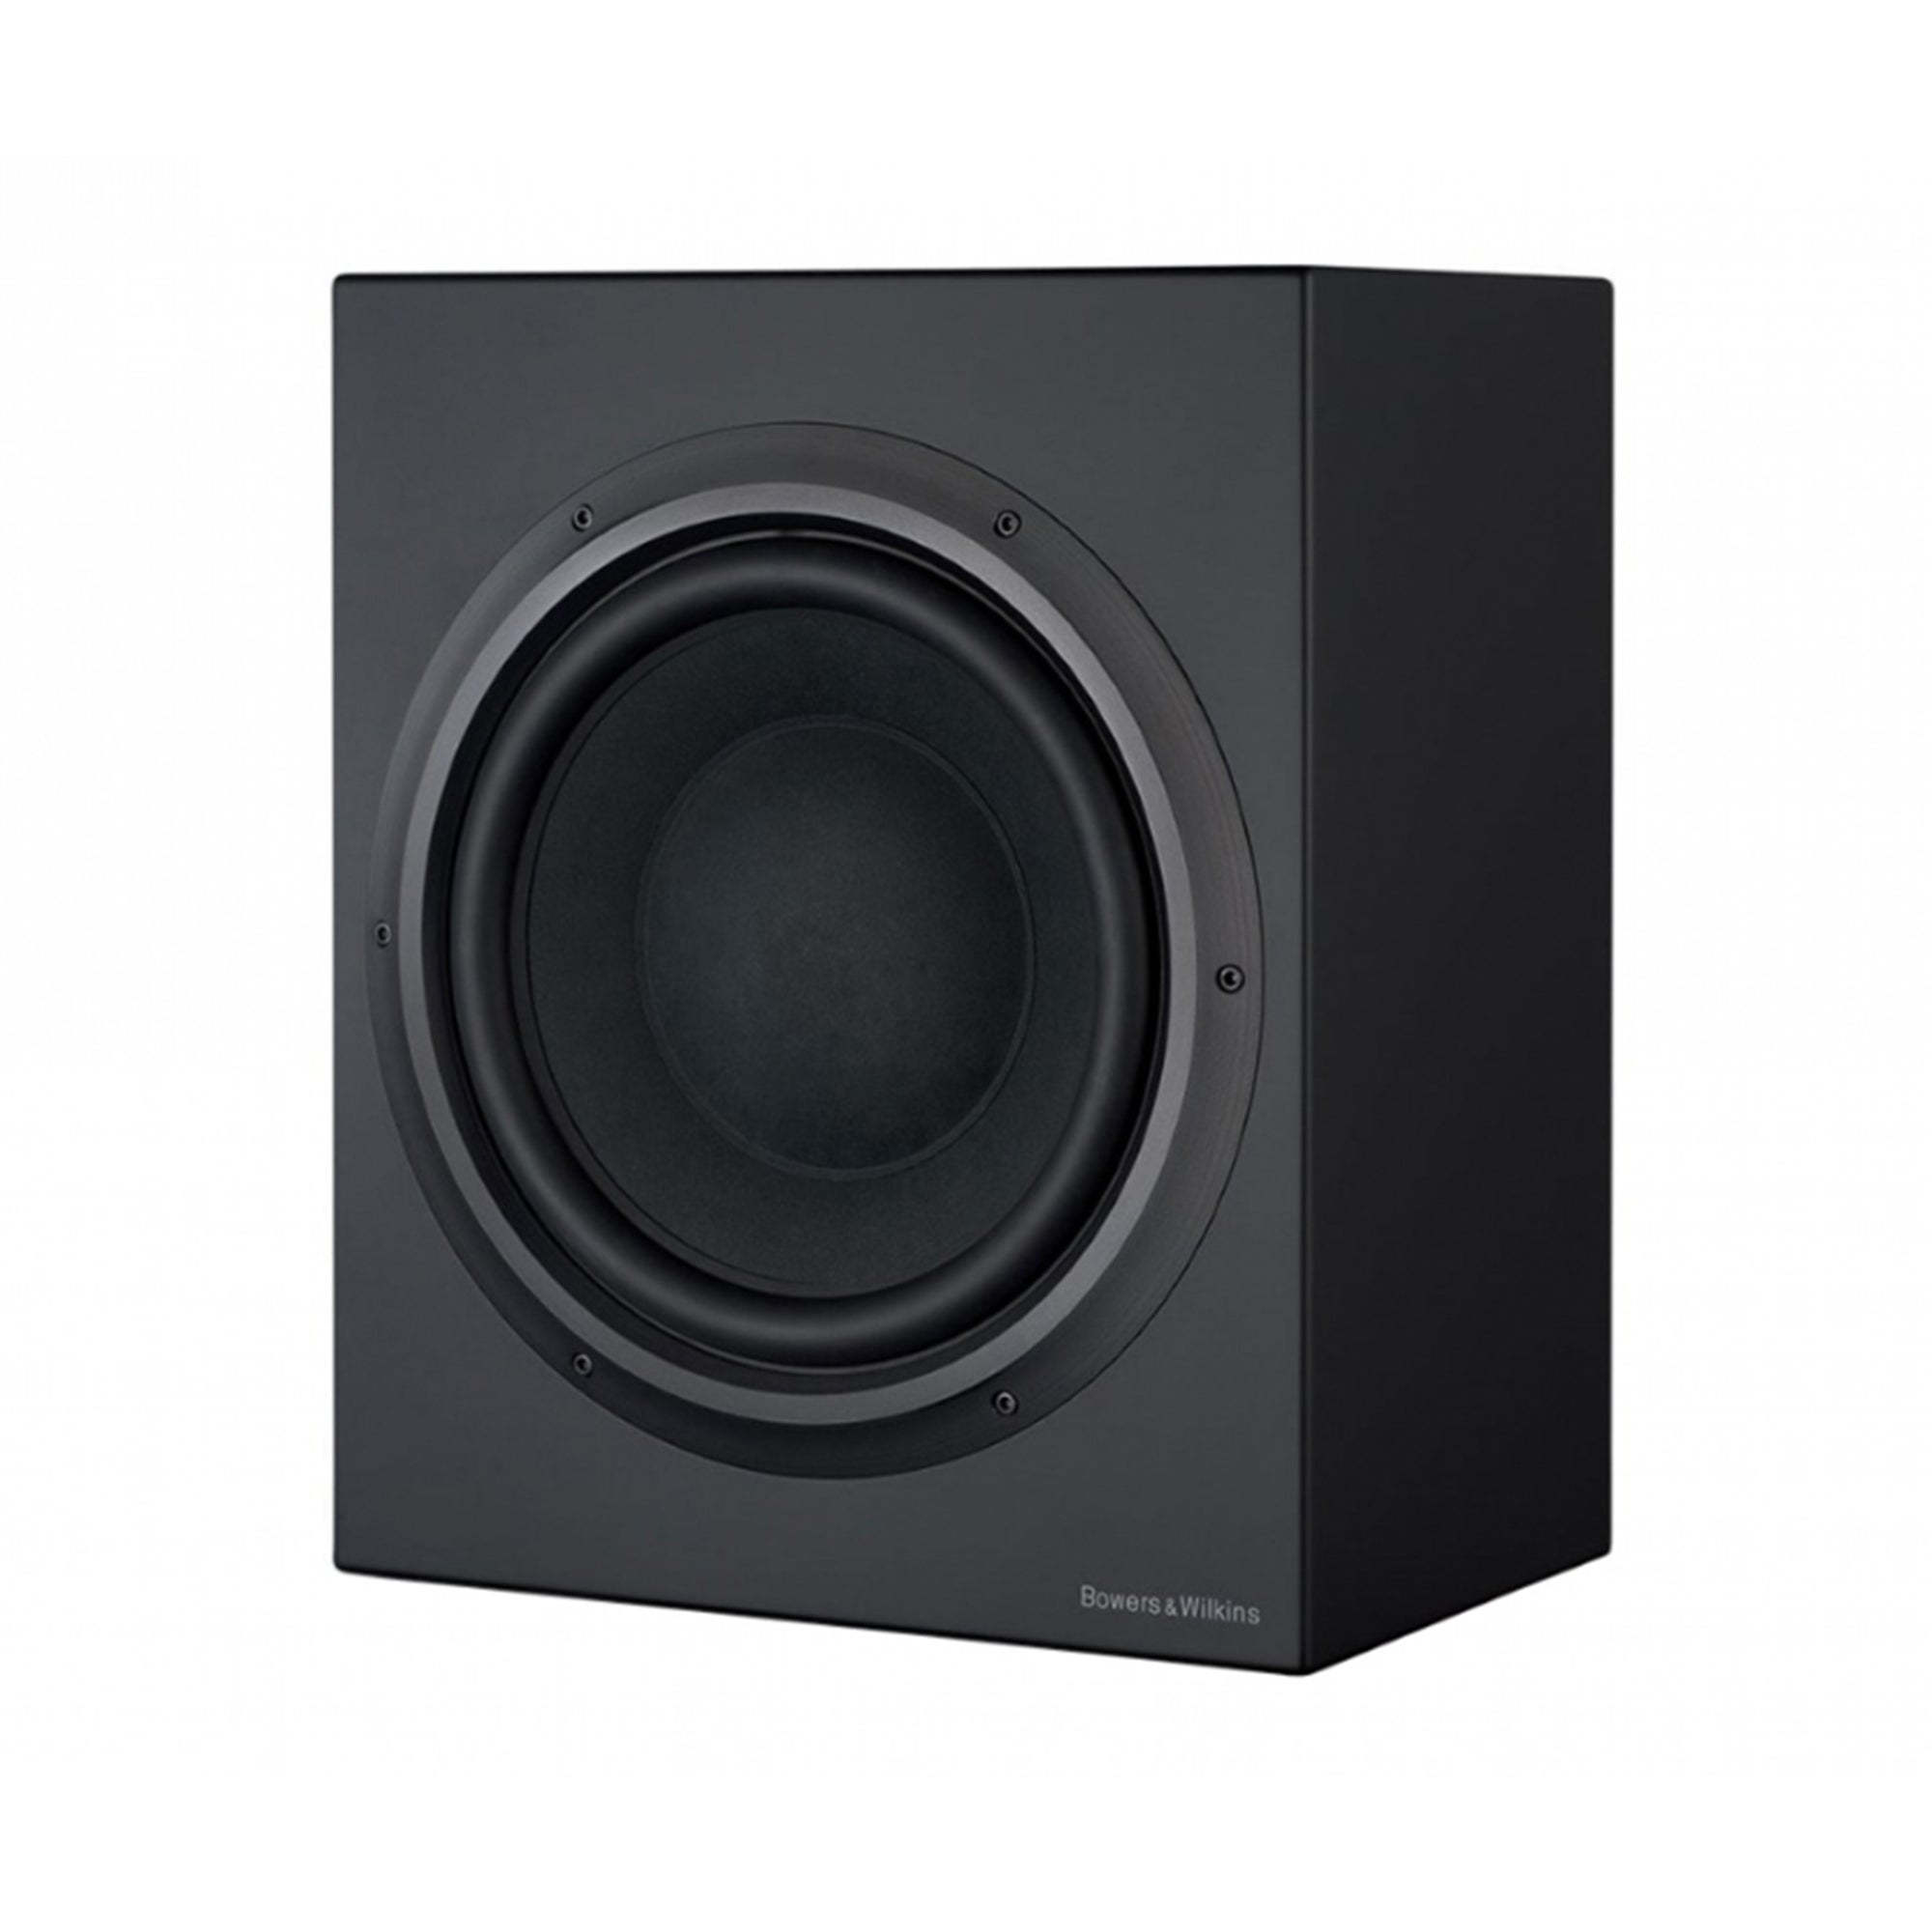 Bowers & WIlkins CTSW10 10